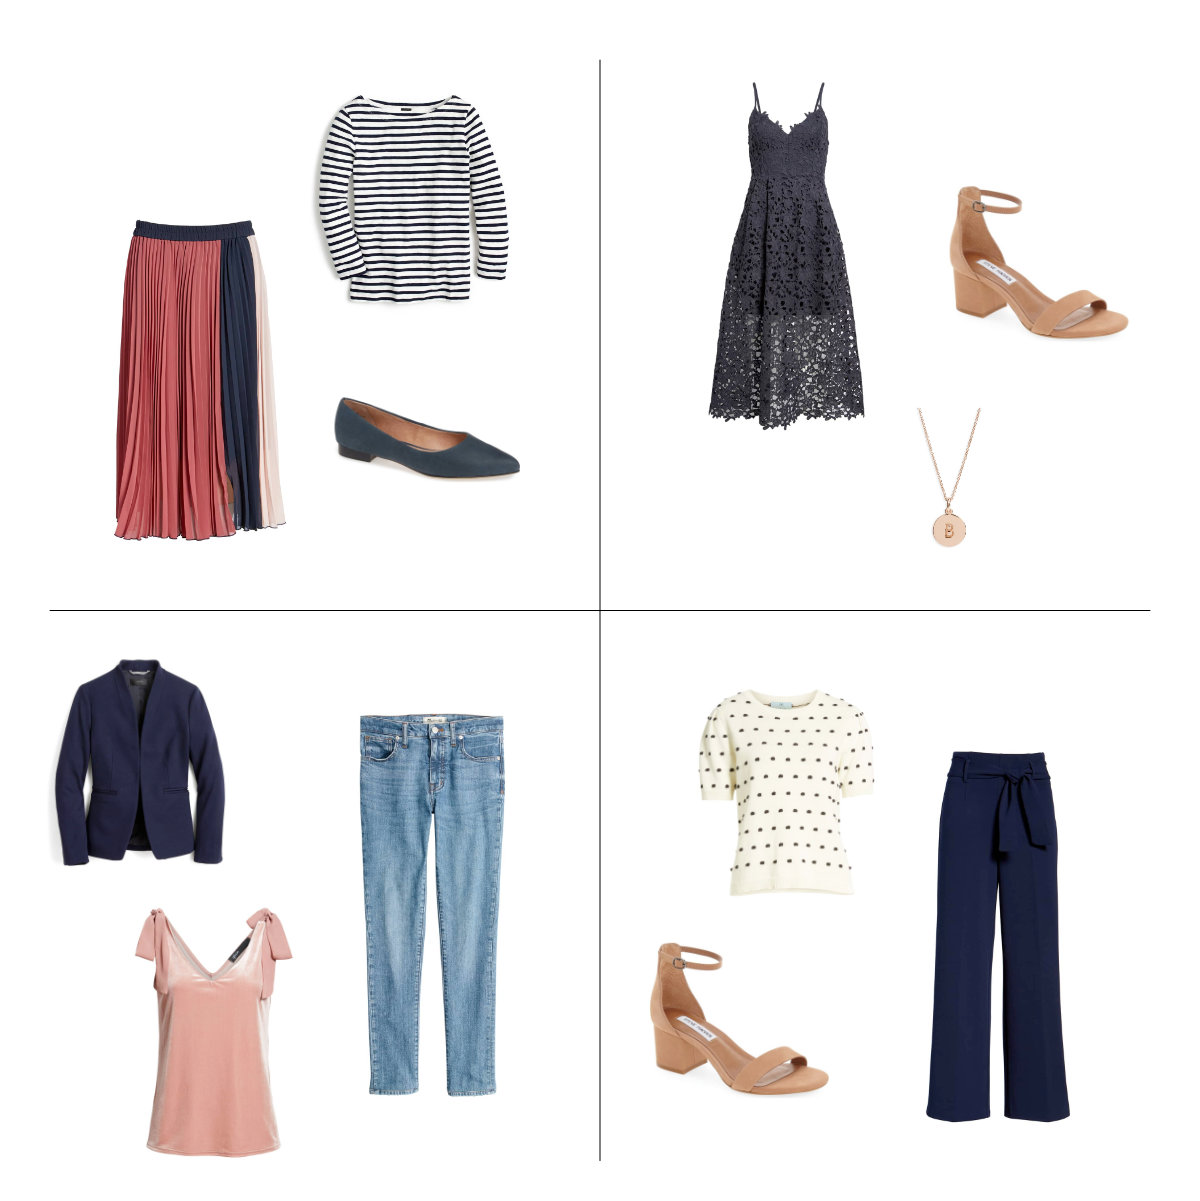 spring-capsule-outfits-1-4